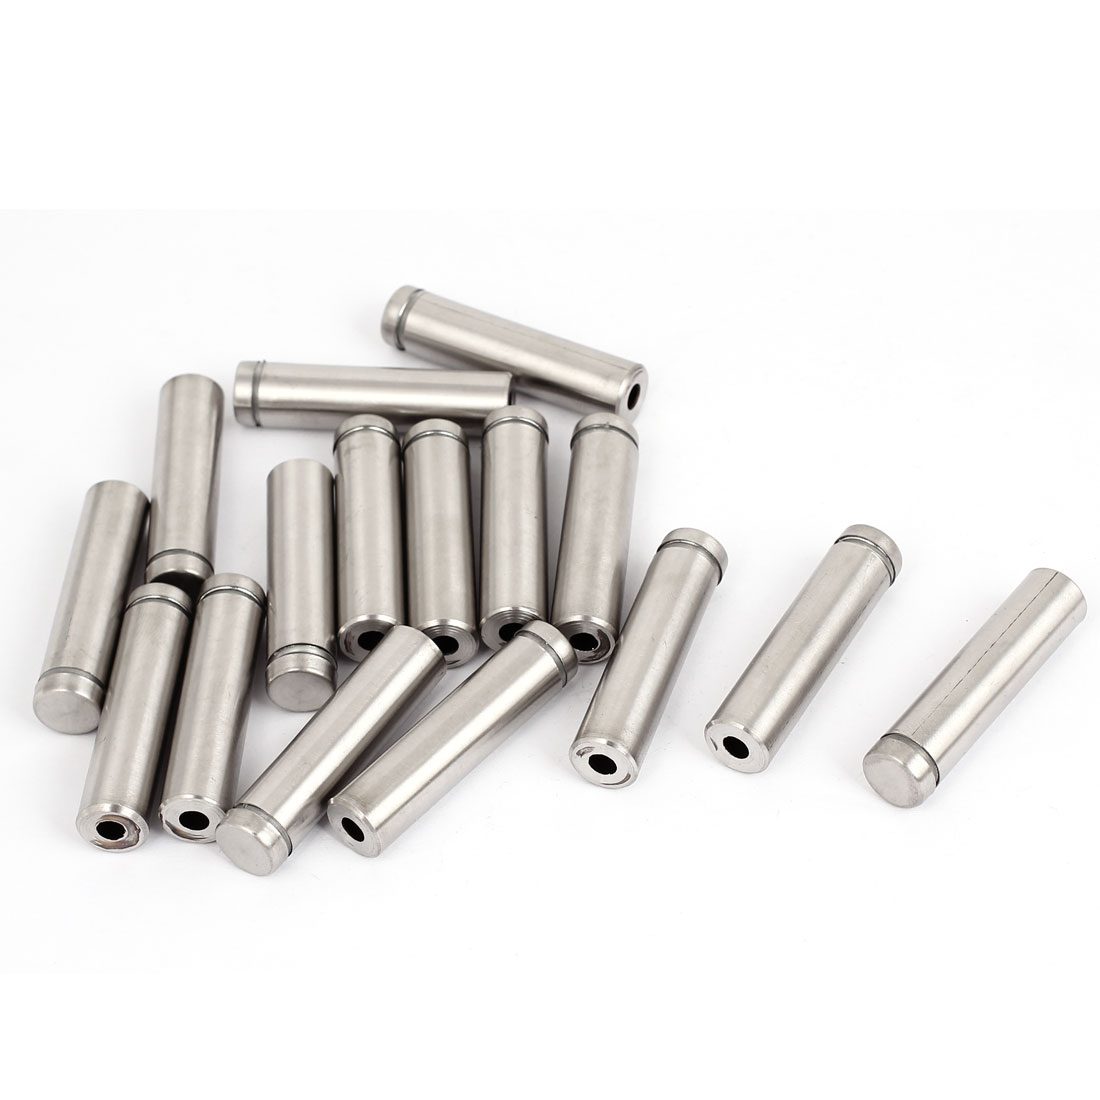 12mm x 50mm Stainless Steel Advertising Frameless Glass Standoff Pins 16pcs